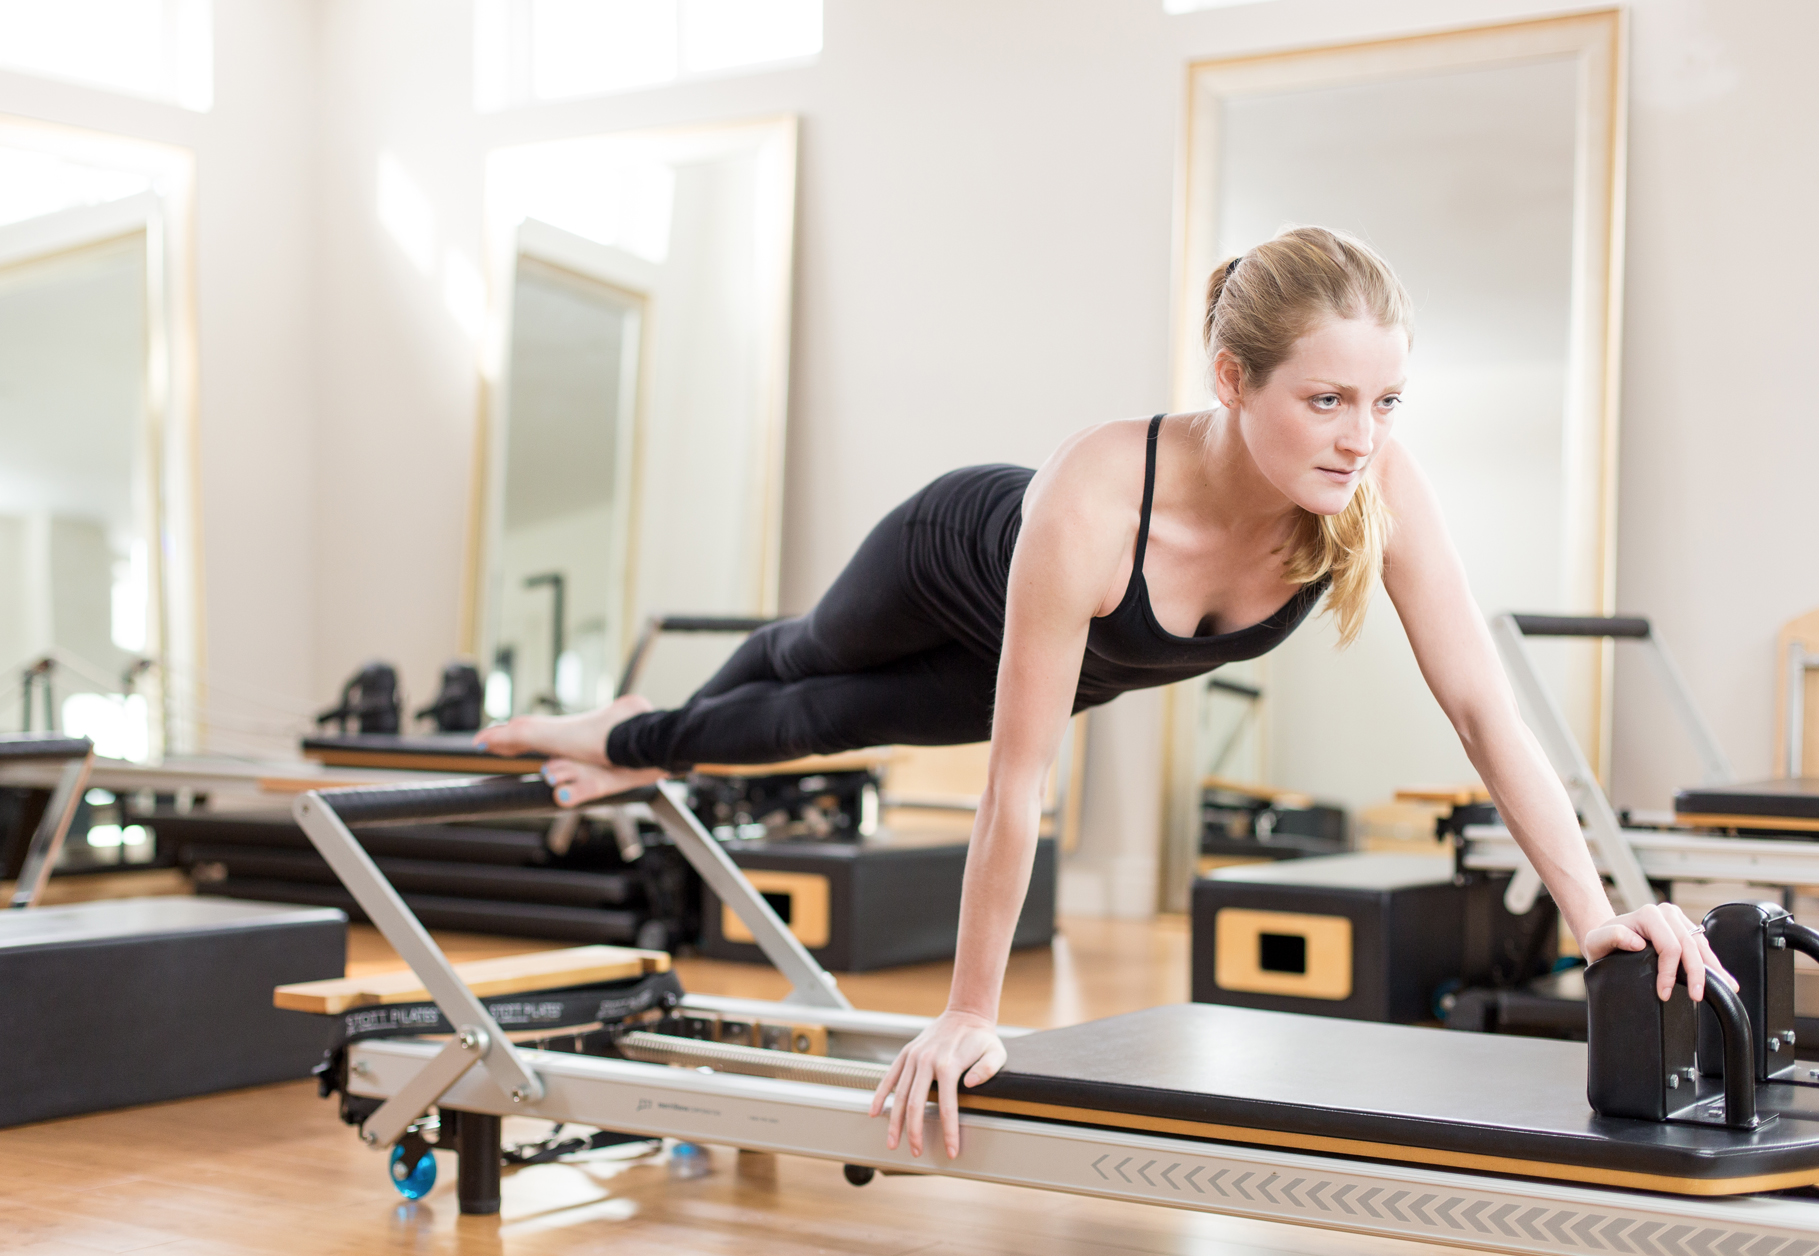 Pilates and Wellness Studio